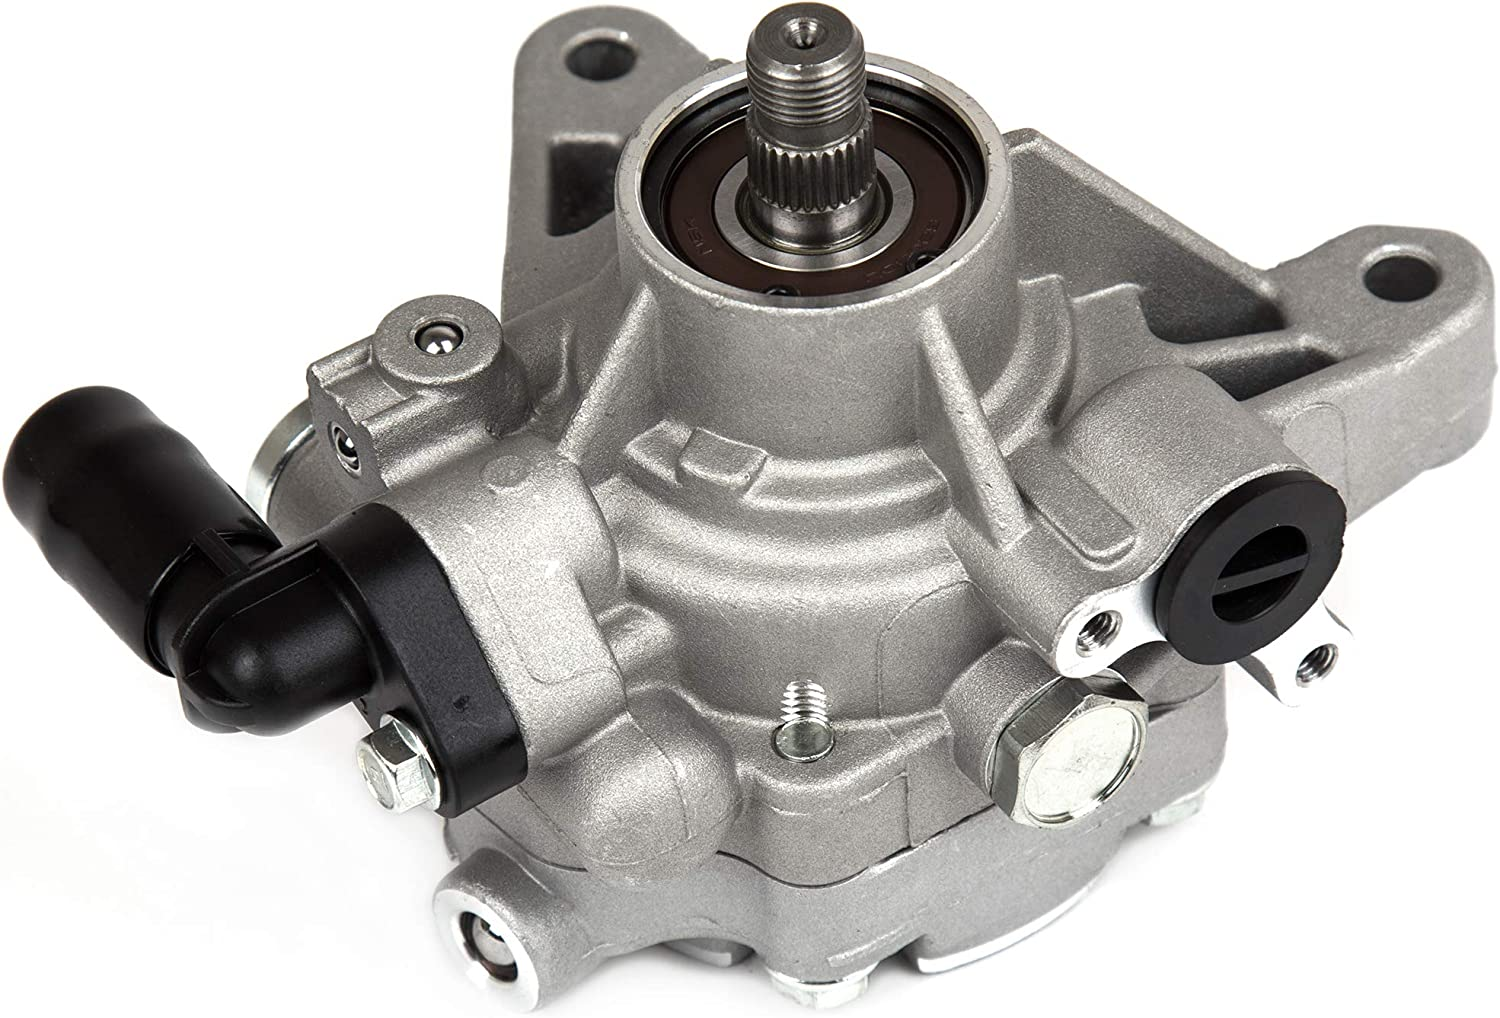 """New Power Steering Pump For 2003-2005 Honda Accord 2.4L l4 GAS DOHC /""""K24A4/"""""""